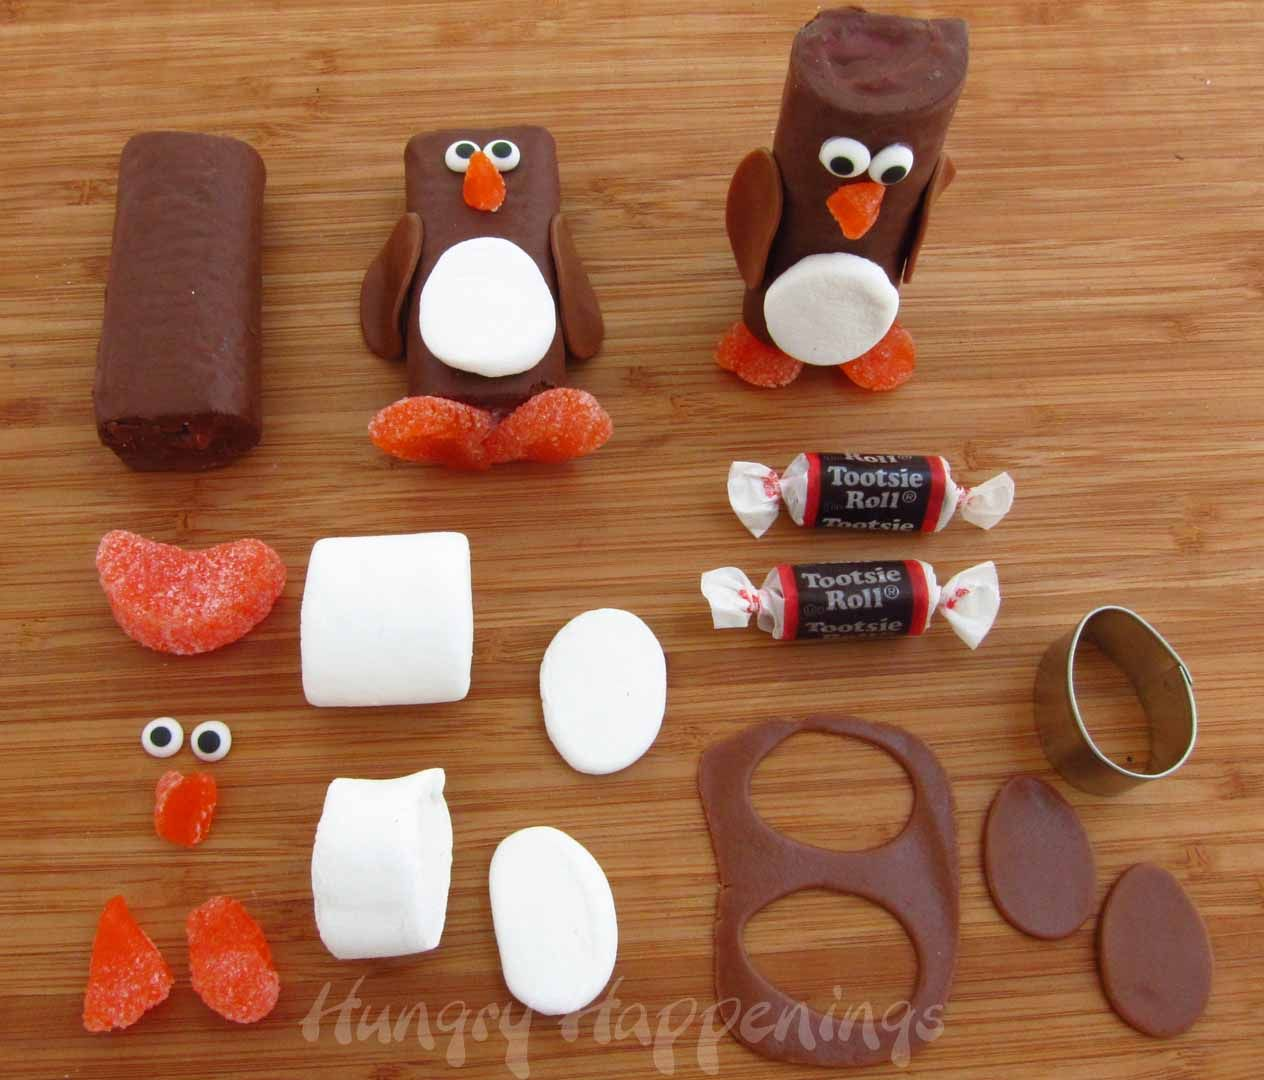 Edible Christmas Craft Ideas Part - 15: Hungry Happenings: Snack Cake Penguins - Penguin Craft That You Can Eat  After!